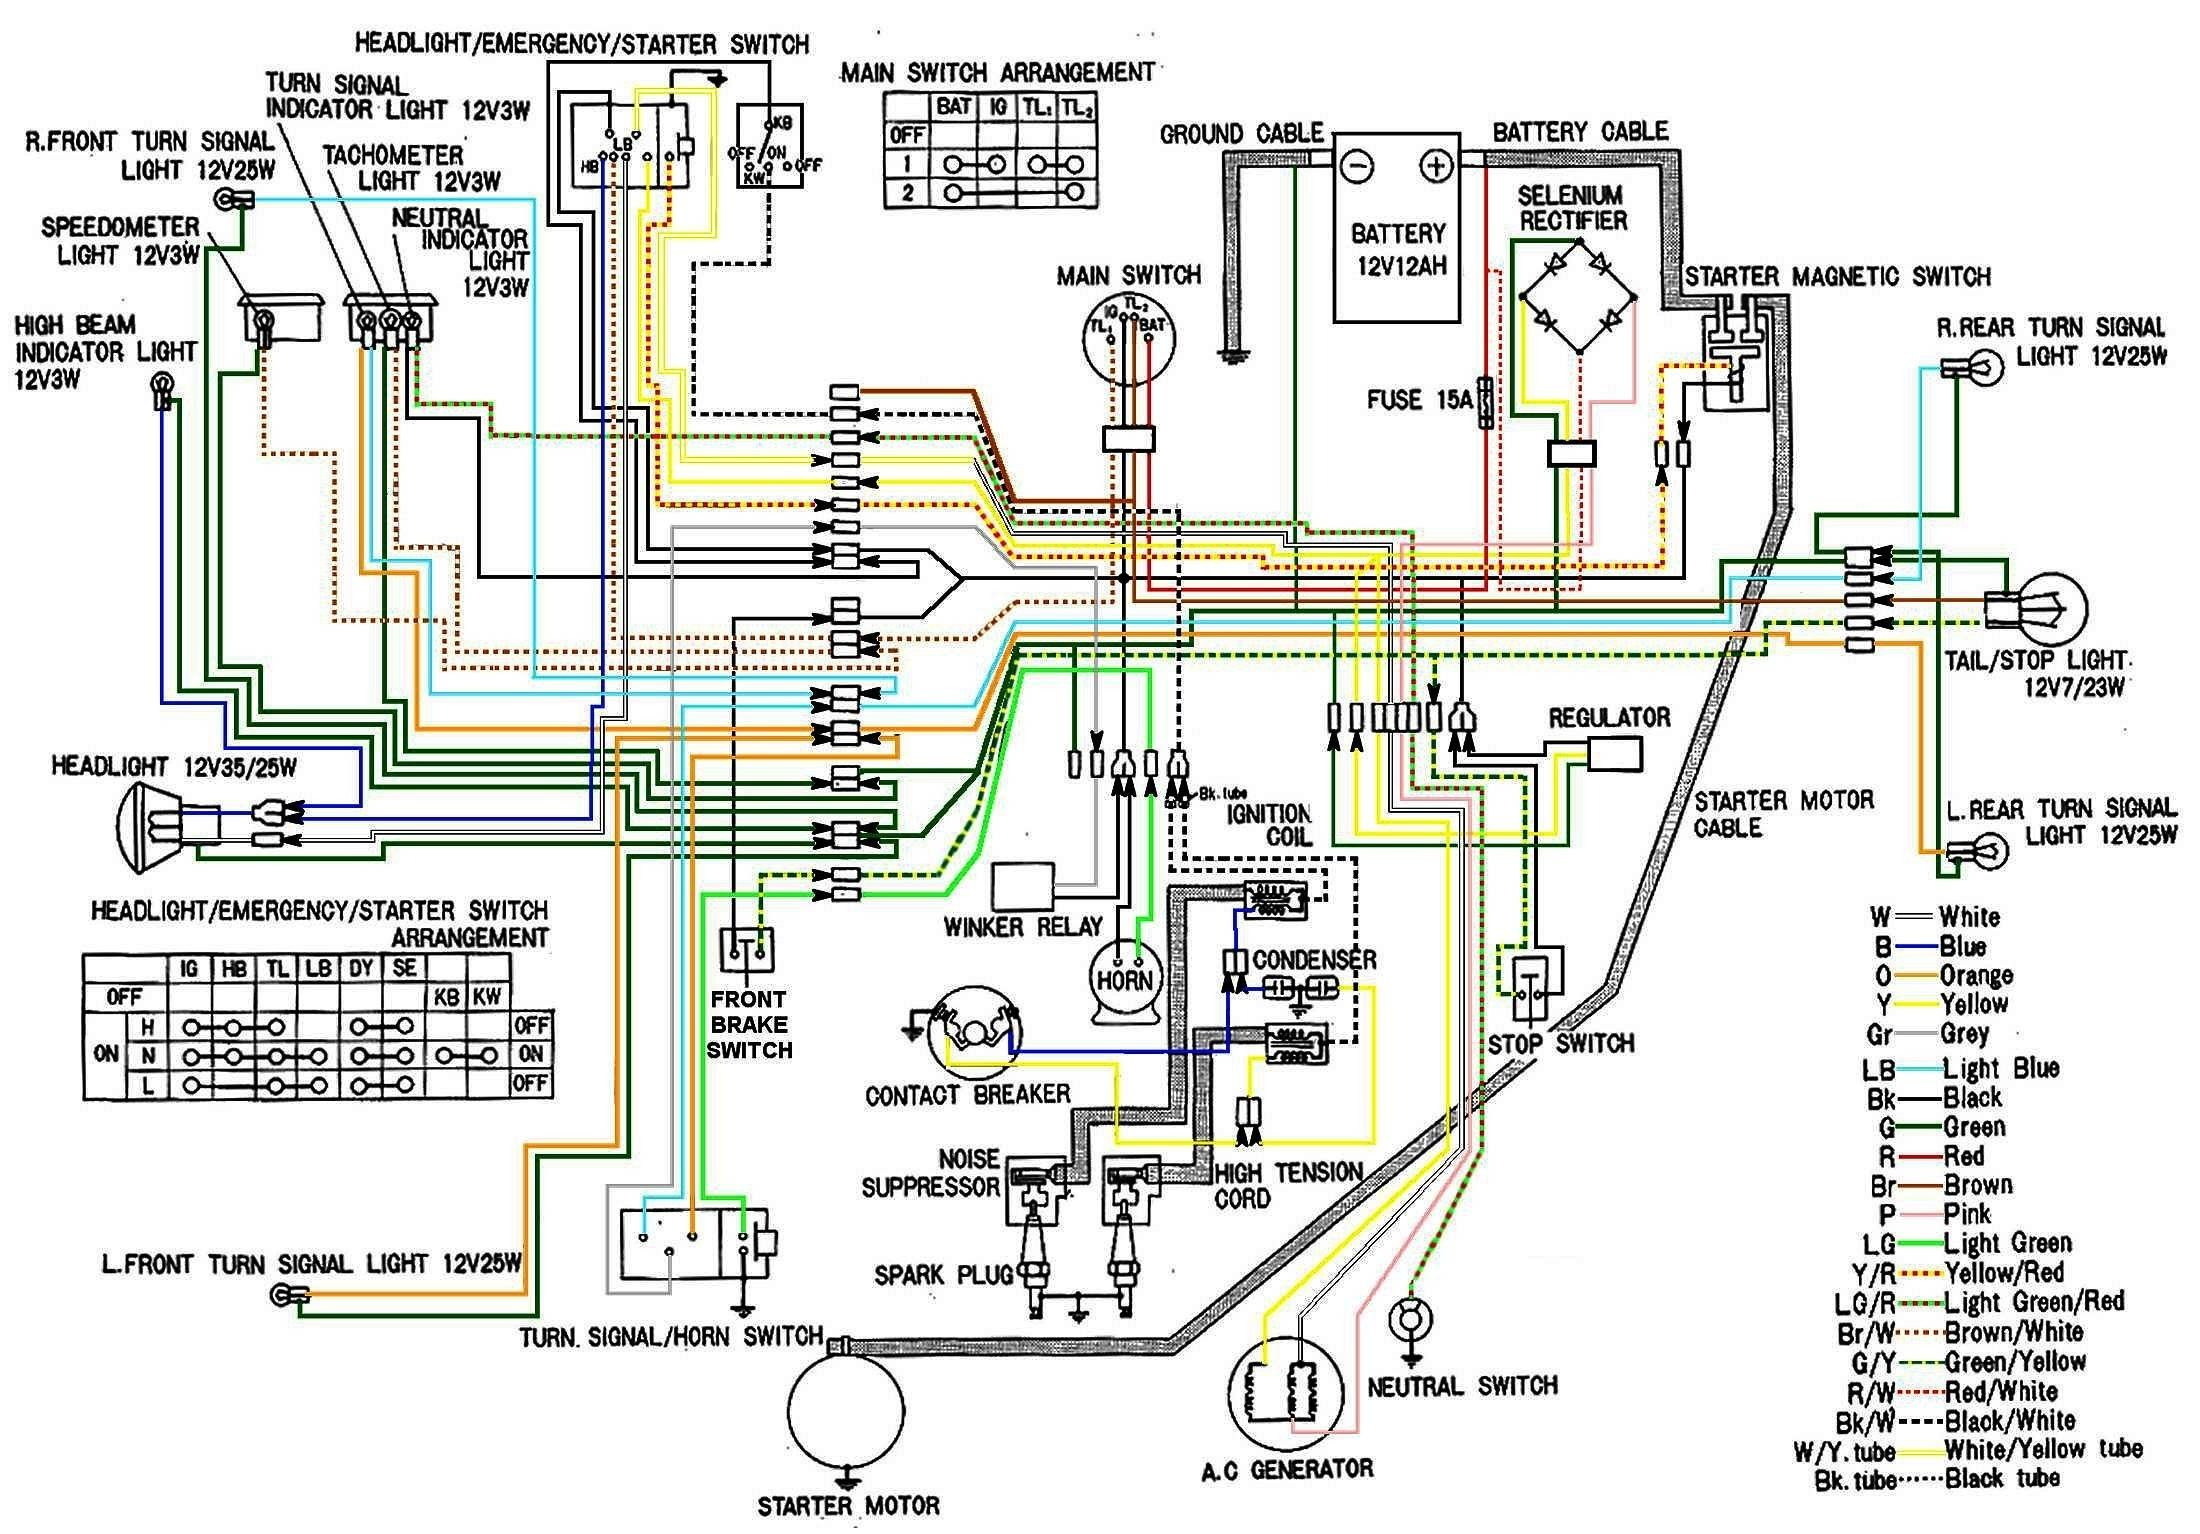 Unique Wiring Diagram For Home Telephone Diagram Diagramsample Diagramtemplate Wiringdiagram Diagramch Electrical Wiring Diagram Diagram Electrical Wiring